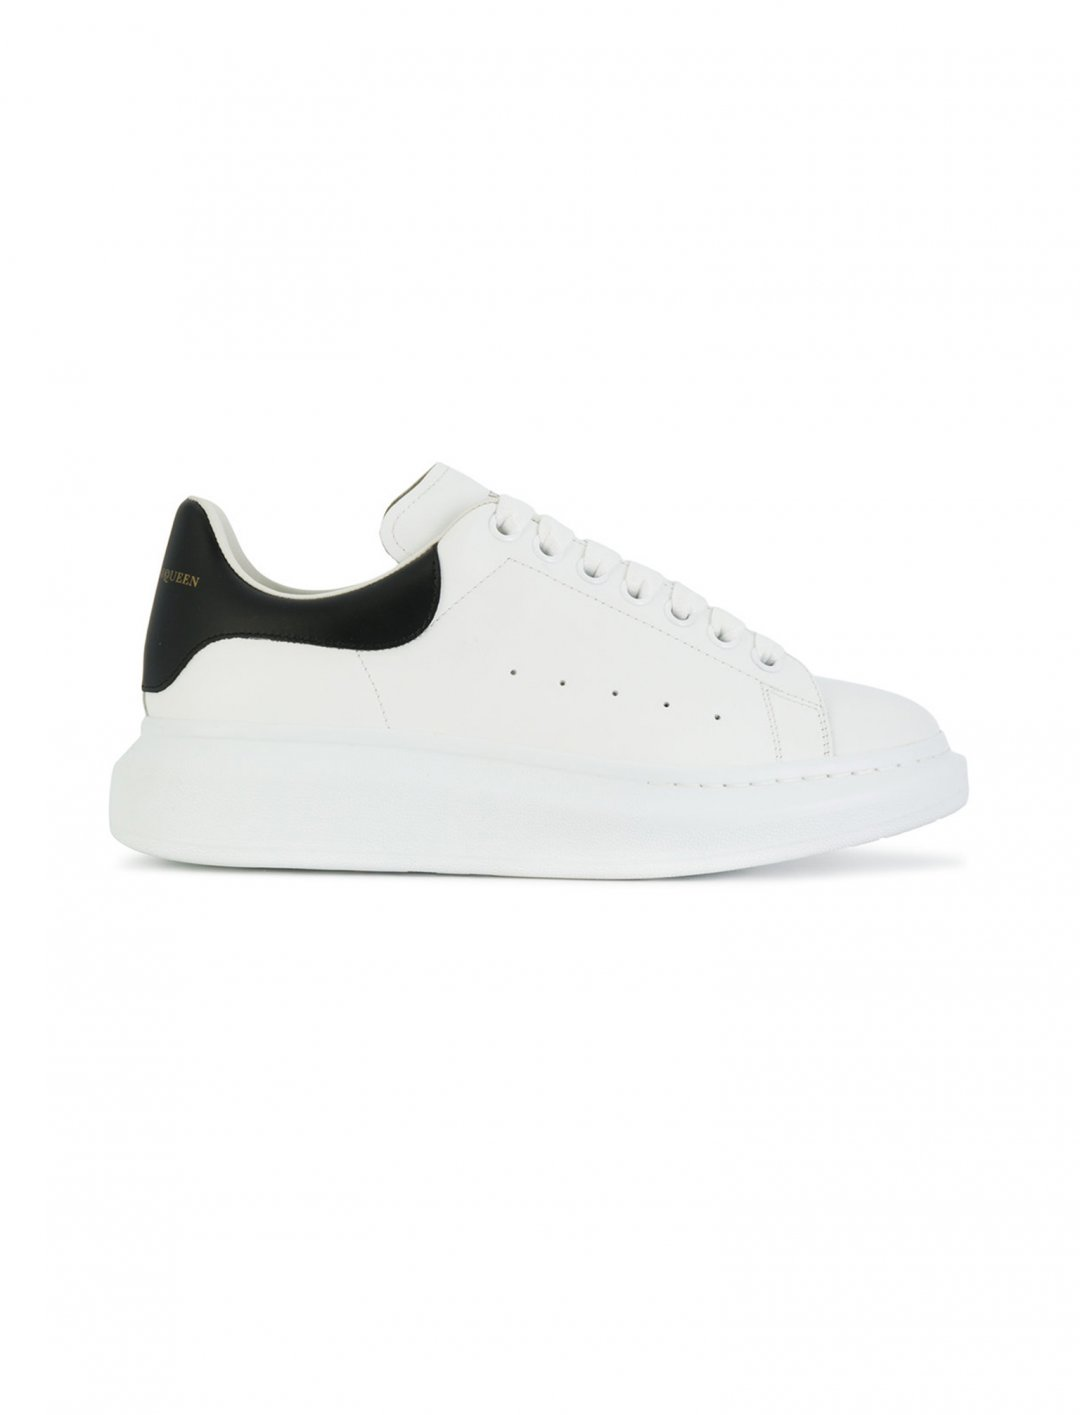 "B Young's Oversized Sneakers {""id"":12,""product_section_id"":1,""name"":""Shoes"",""order"":12} Alexander McQueen"